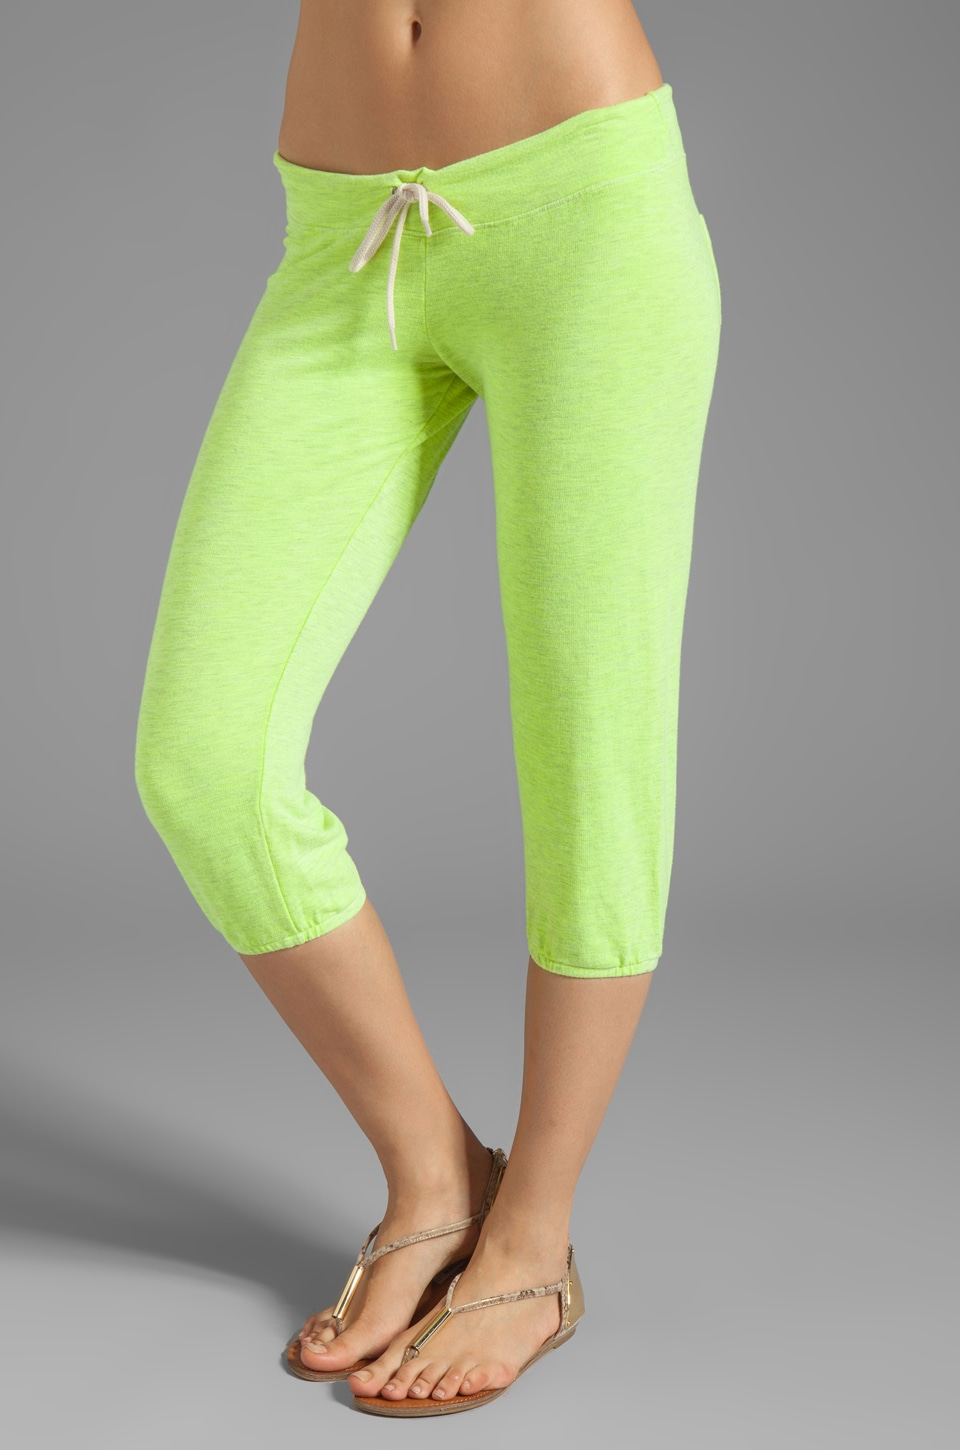 MONROW French Terry 3/4 Vintage Sweats in Neon Citron